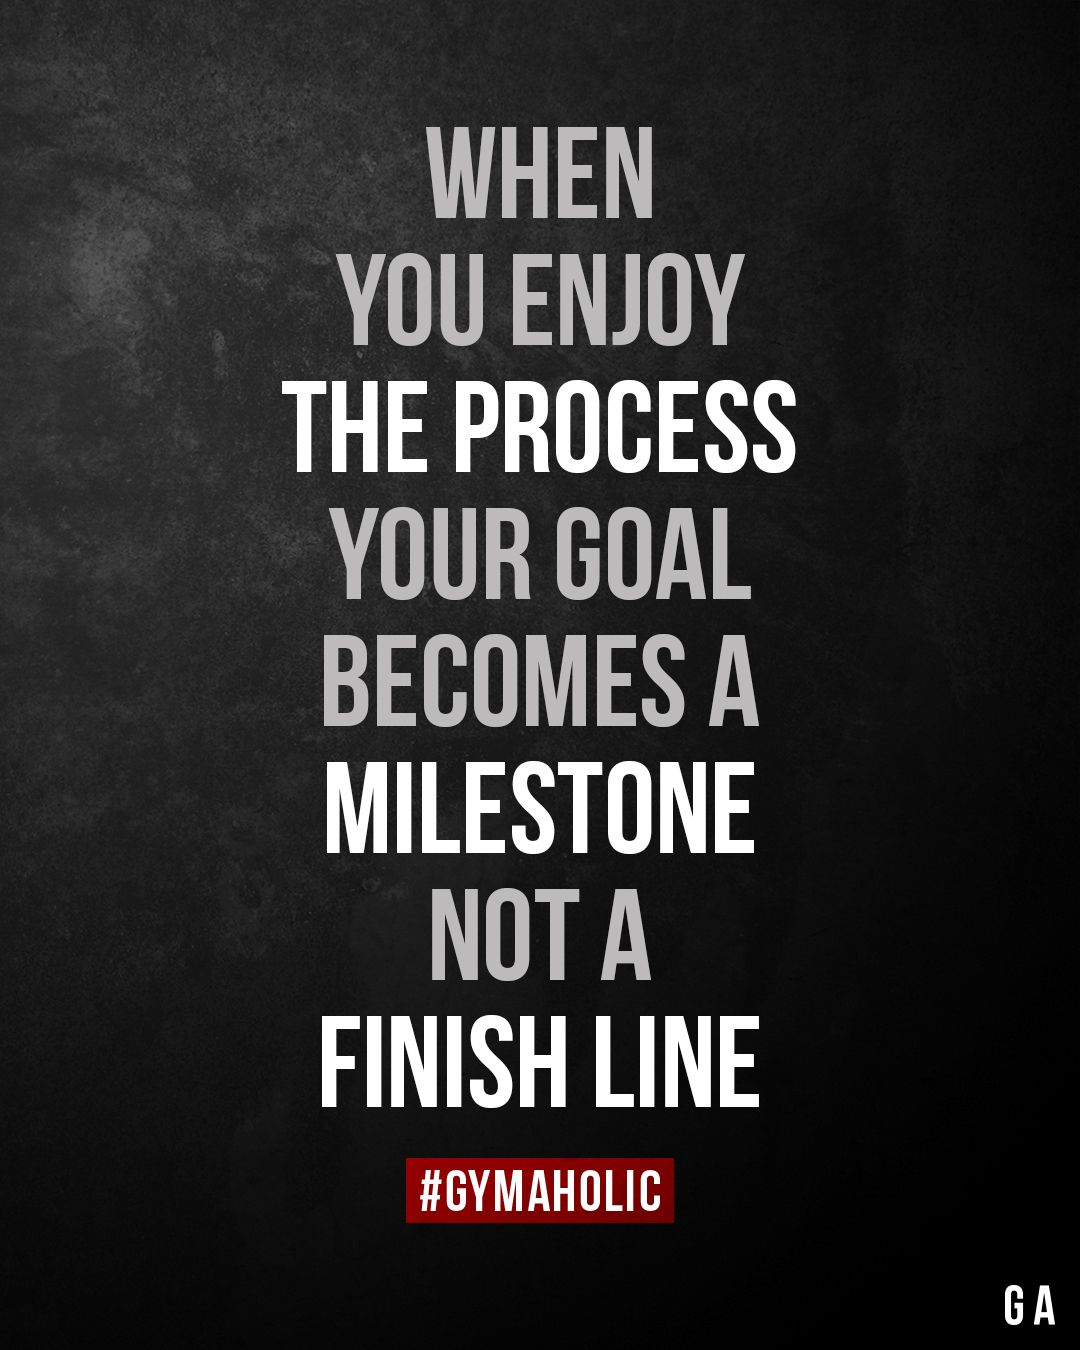 Pin By Runner Girl On 2020 In 2020 Fitness Motivation Quotes Fitness Quotes Quotes To Live By